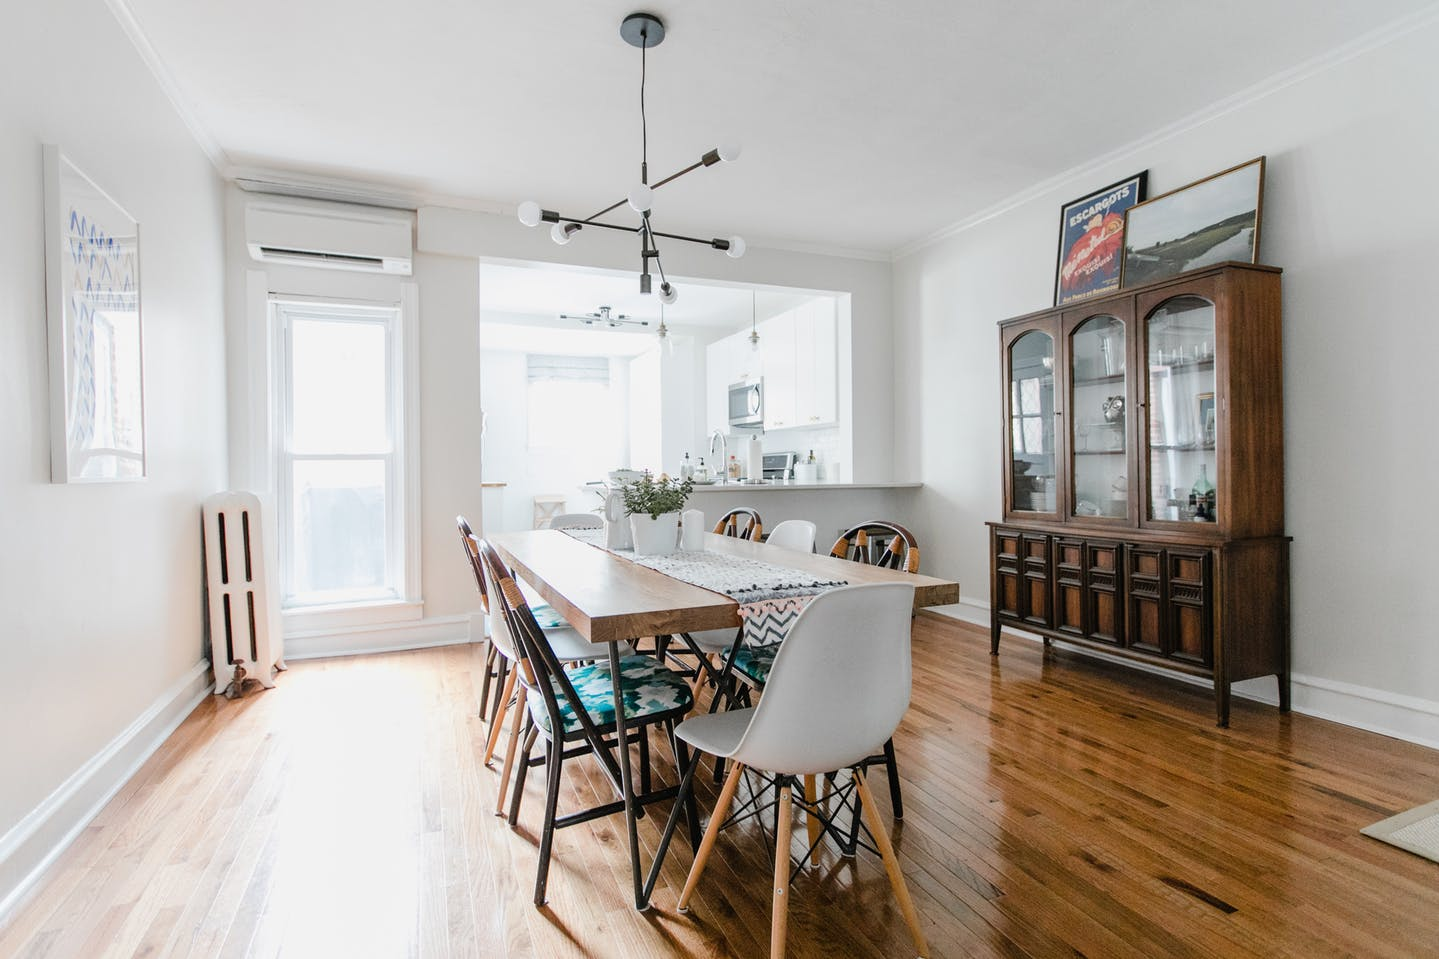 See Mix & Match Design Company's eclectic modern house tour on Apartment Therapy! Here is her dining room that opens into the white kitchen. | Mid-century china cabinet, mix and match dining chairs, West Elm light fixture.